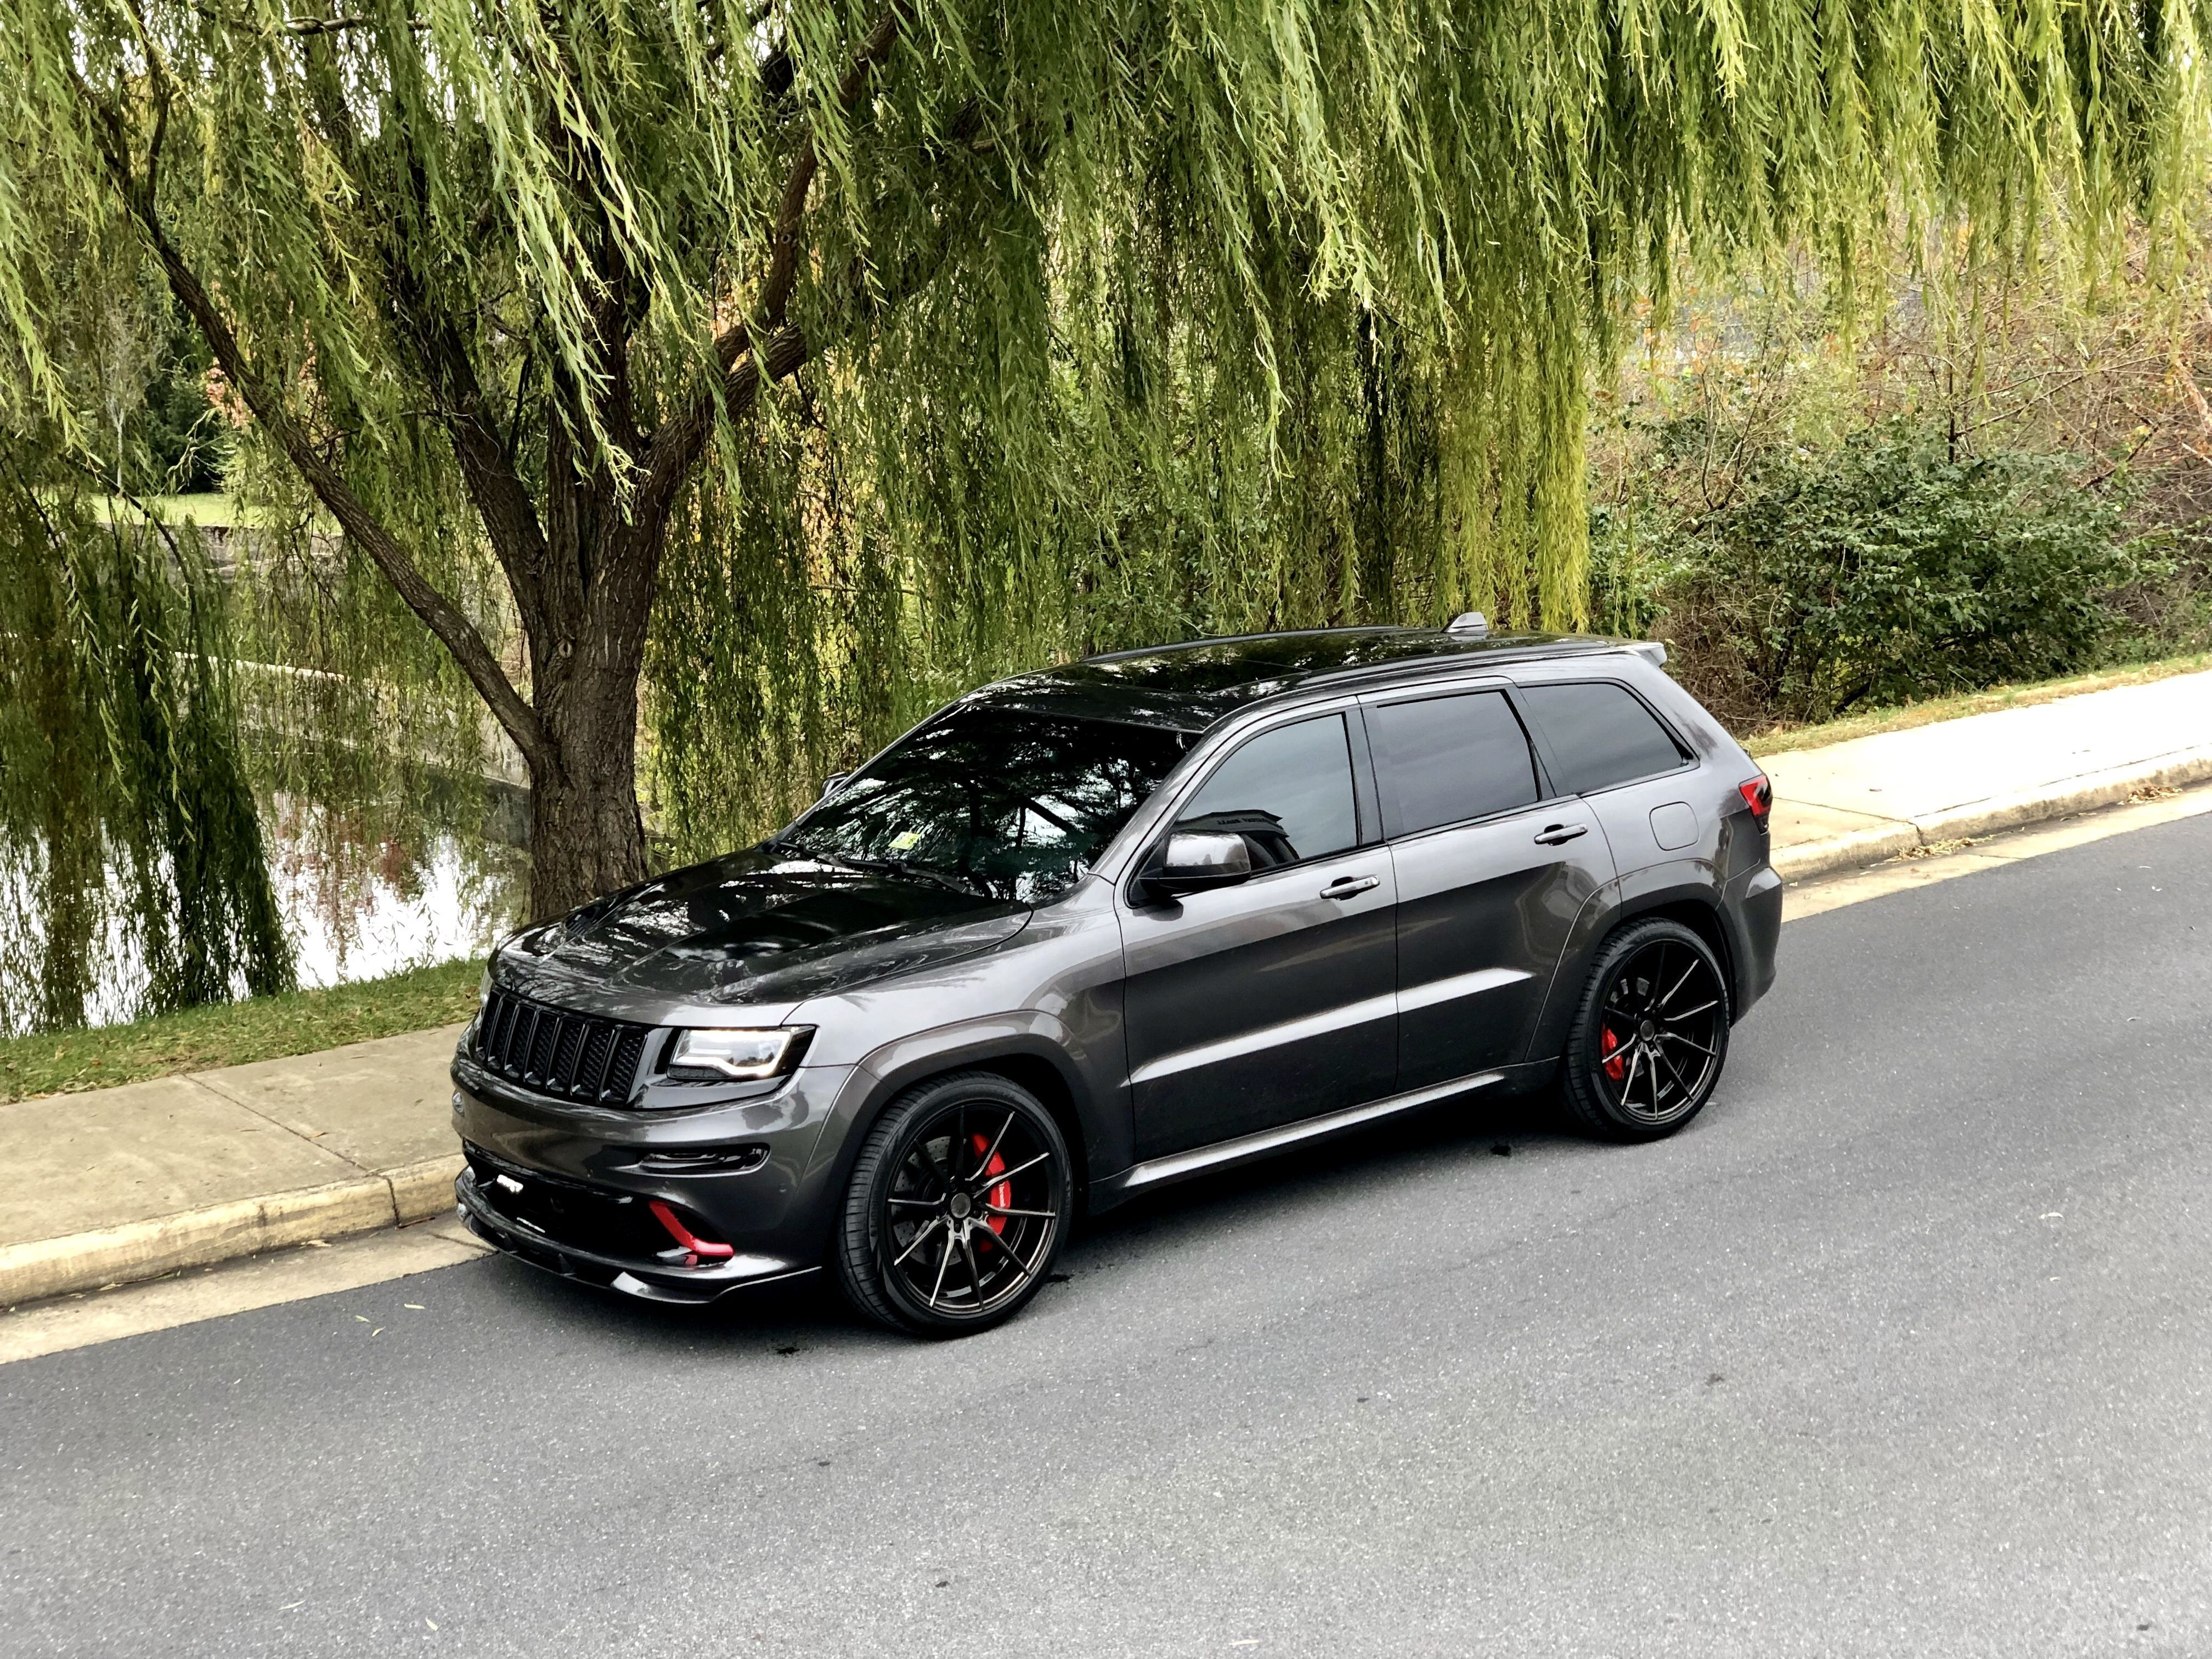 Pin By Jn On Cars Cars Carss In 2020 Jeep Srt8 Jeep Grand Cherokee Srt Suv Cars